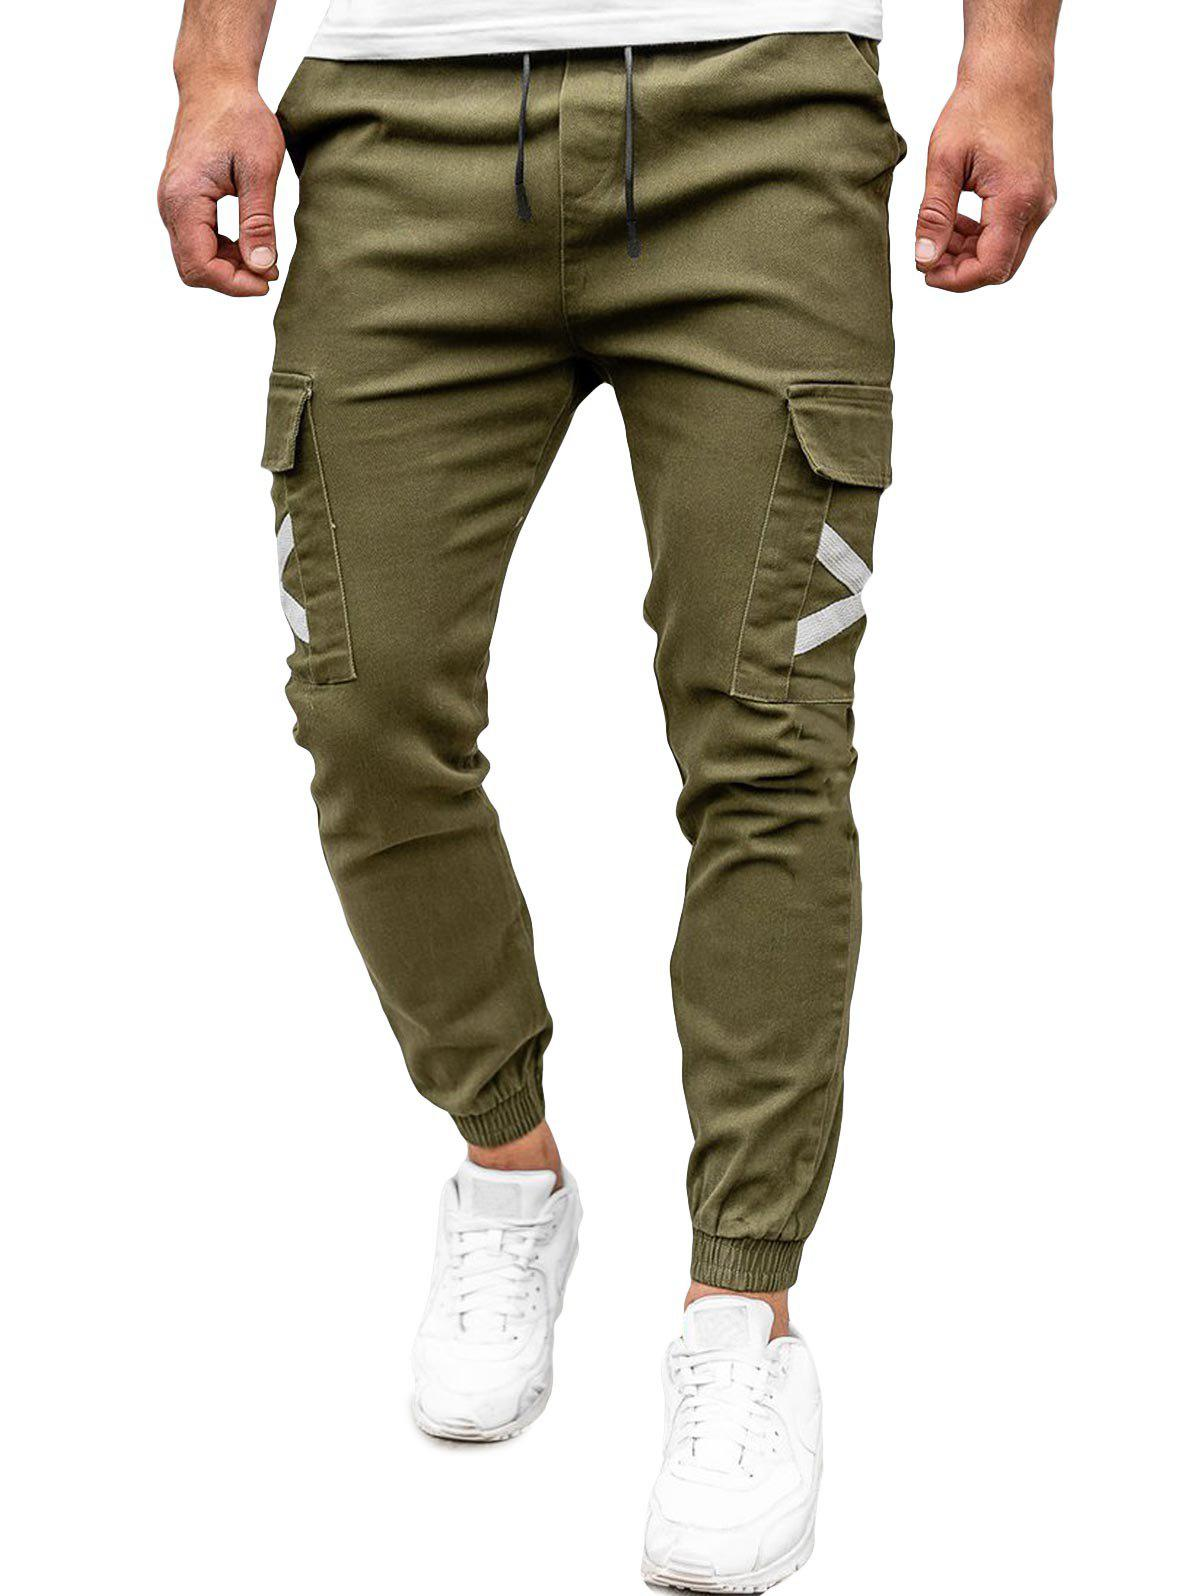 Unique Drawstring Flap Pocket Beam Feet Cargo Pants